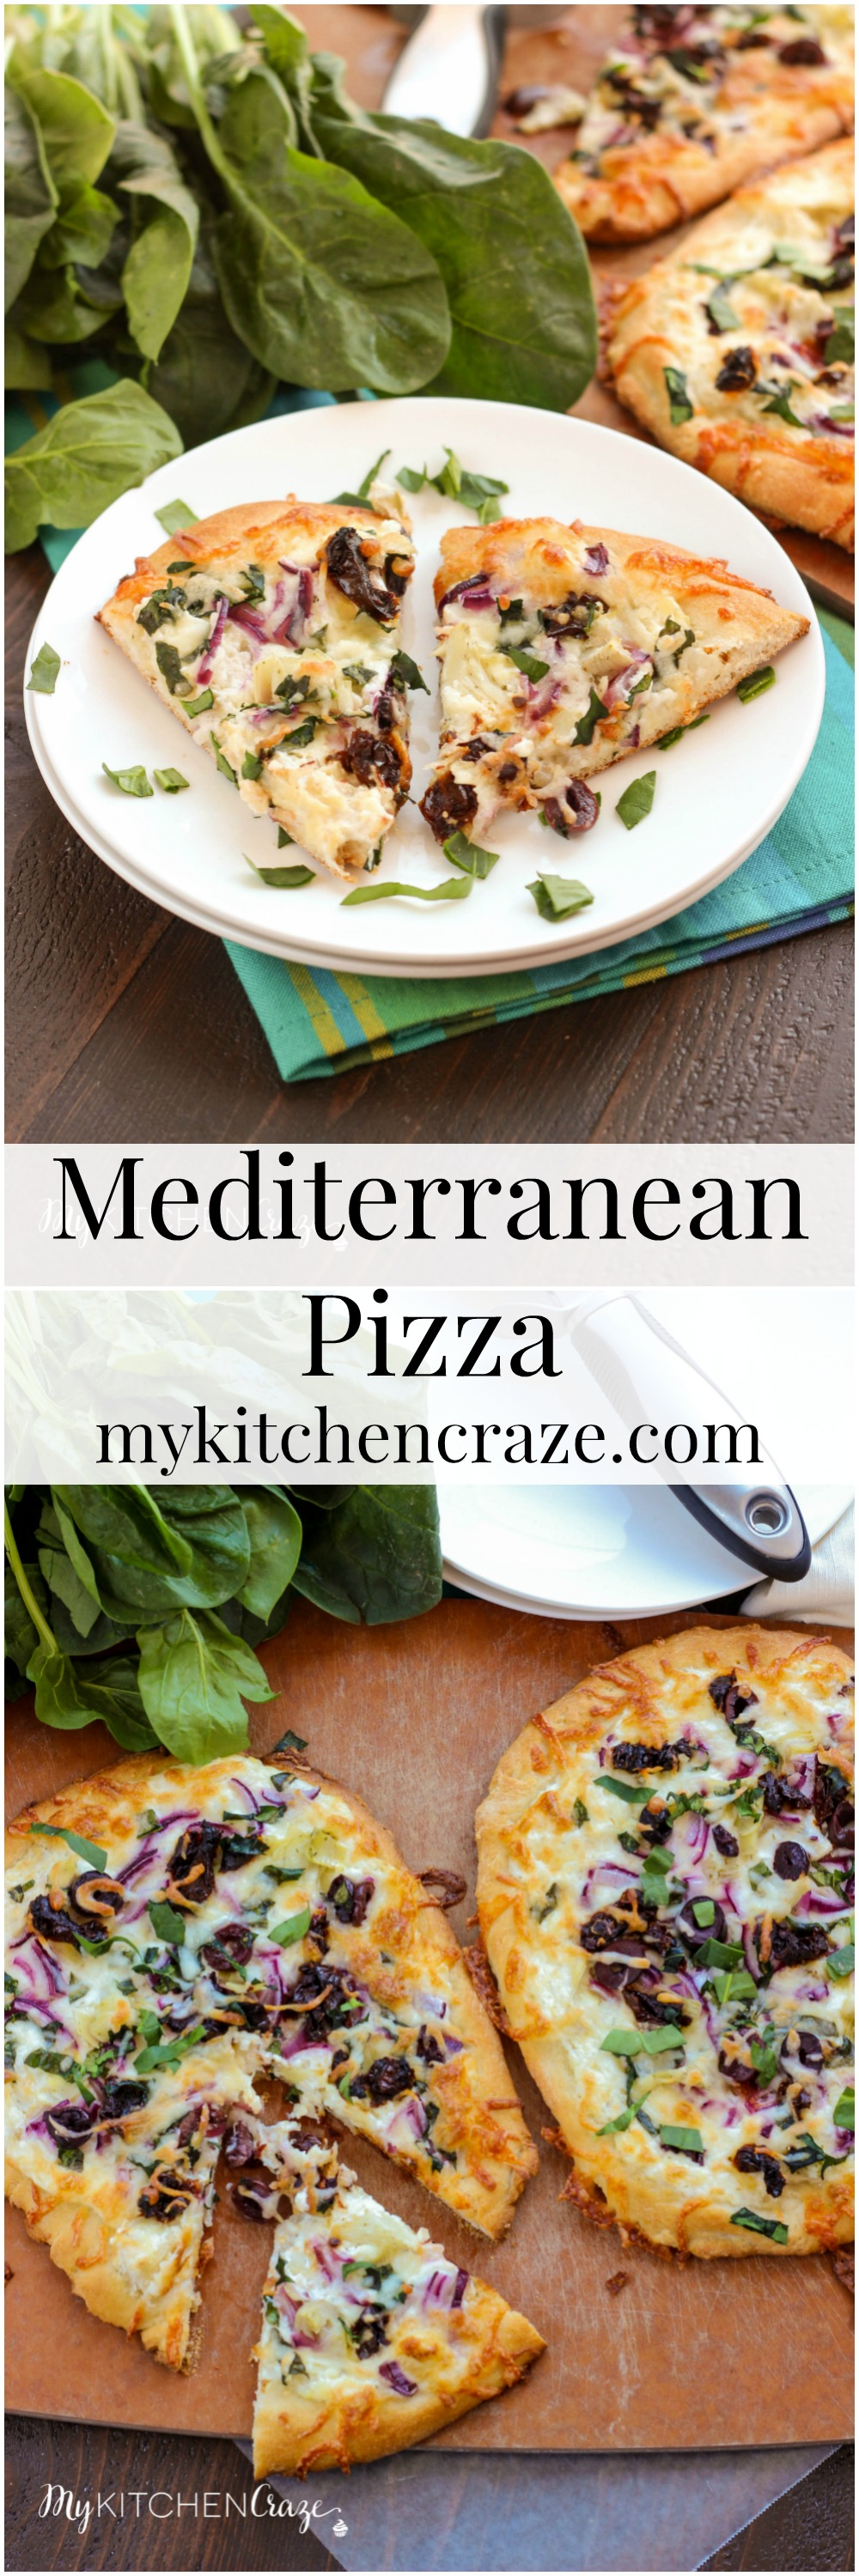 Mediterranean Pizza ~ mykitchencraze.com ~ Enjoy this delicious pizza filled with olives, sun-dried tomatoes, red onions and a yummy spinach, artichoke and garlic spread. Pizza night never looked so good.